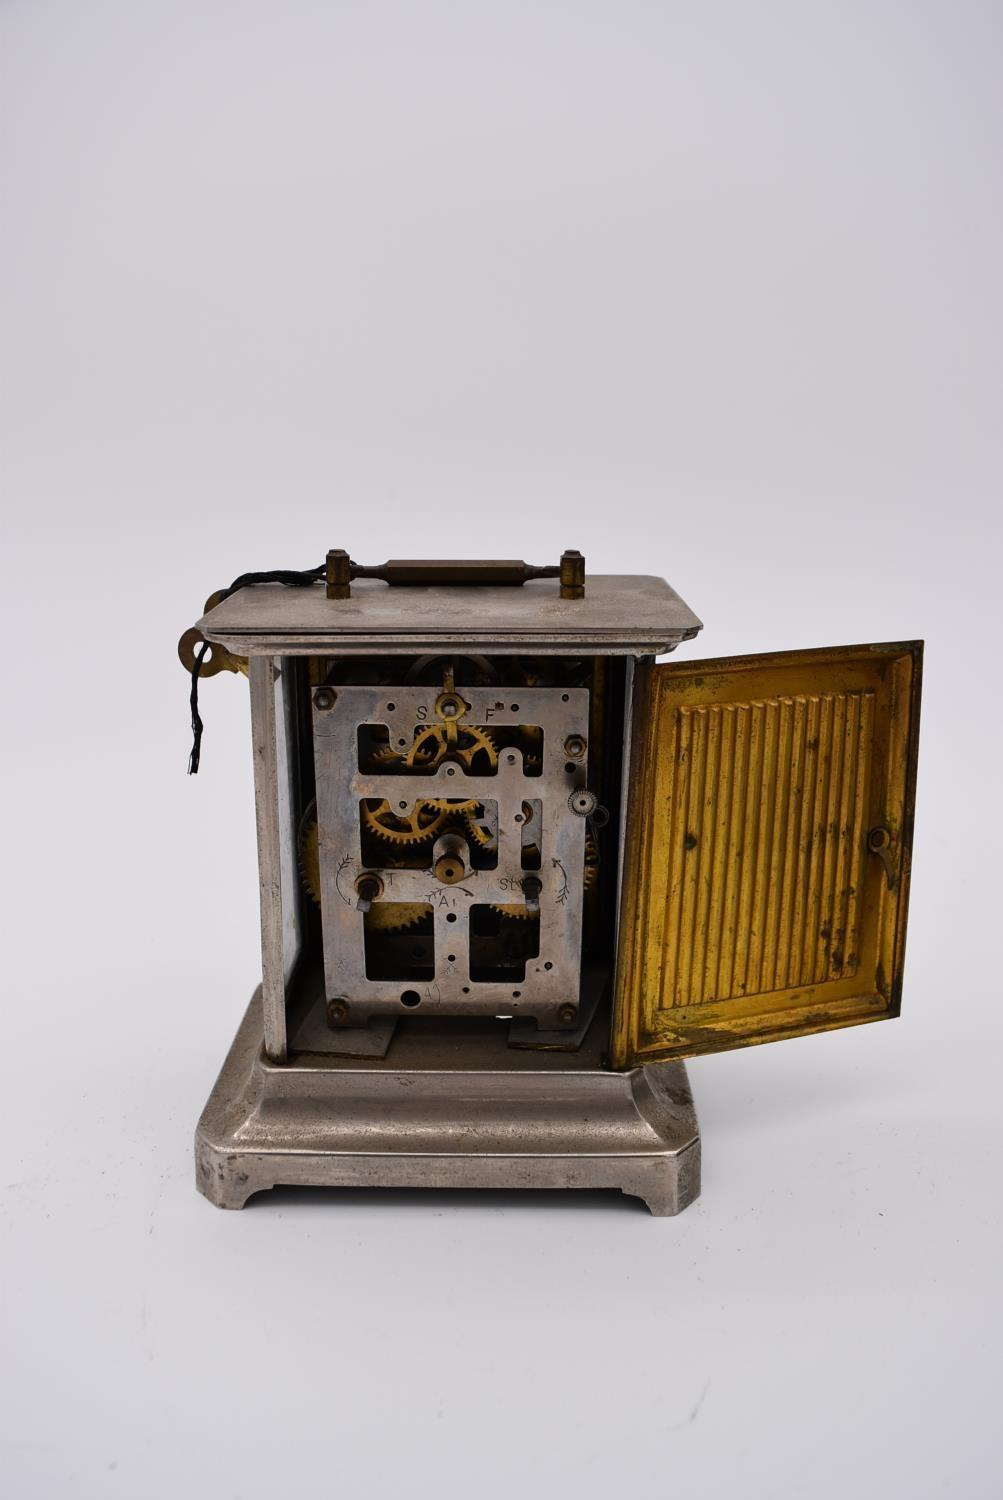 A brass cased carriage clock with engraved brass front with scrolling design and white enamel dial - Image 5 of 8